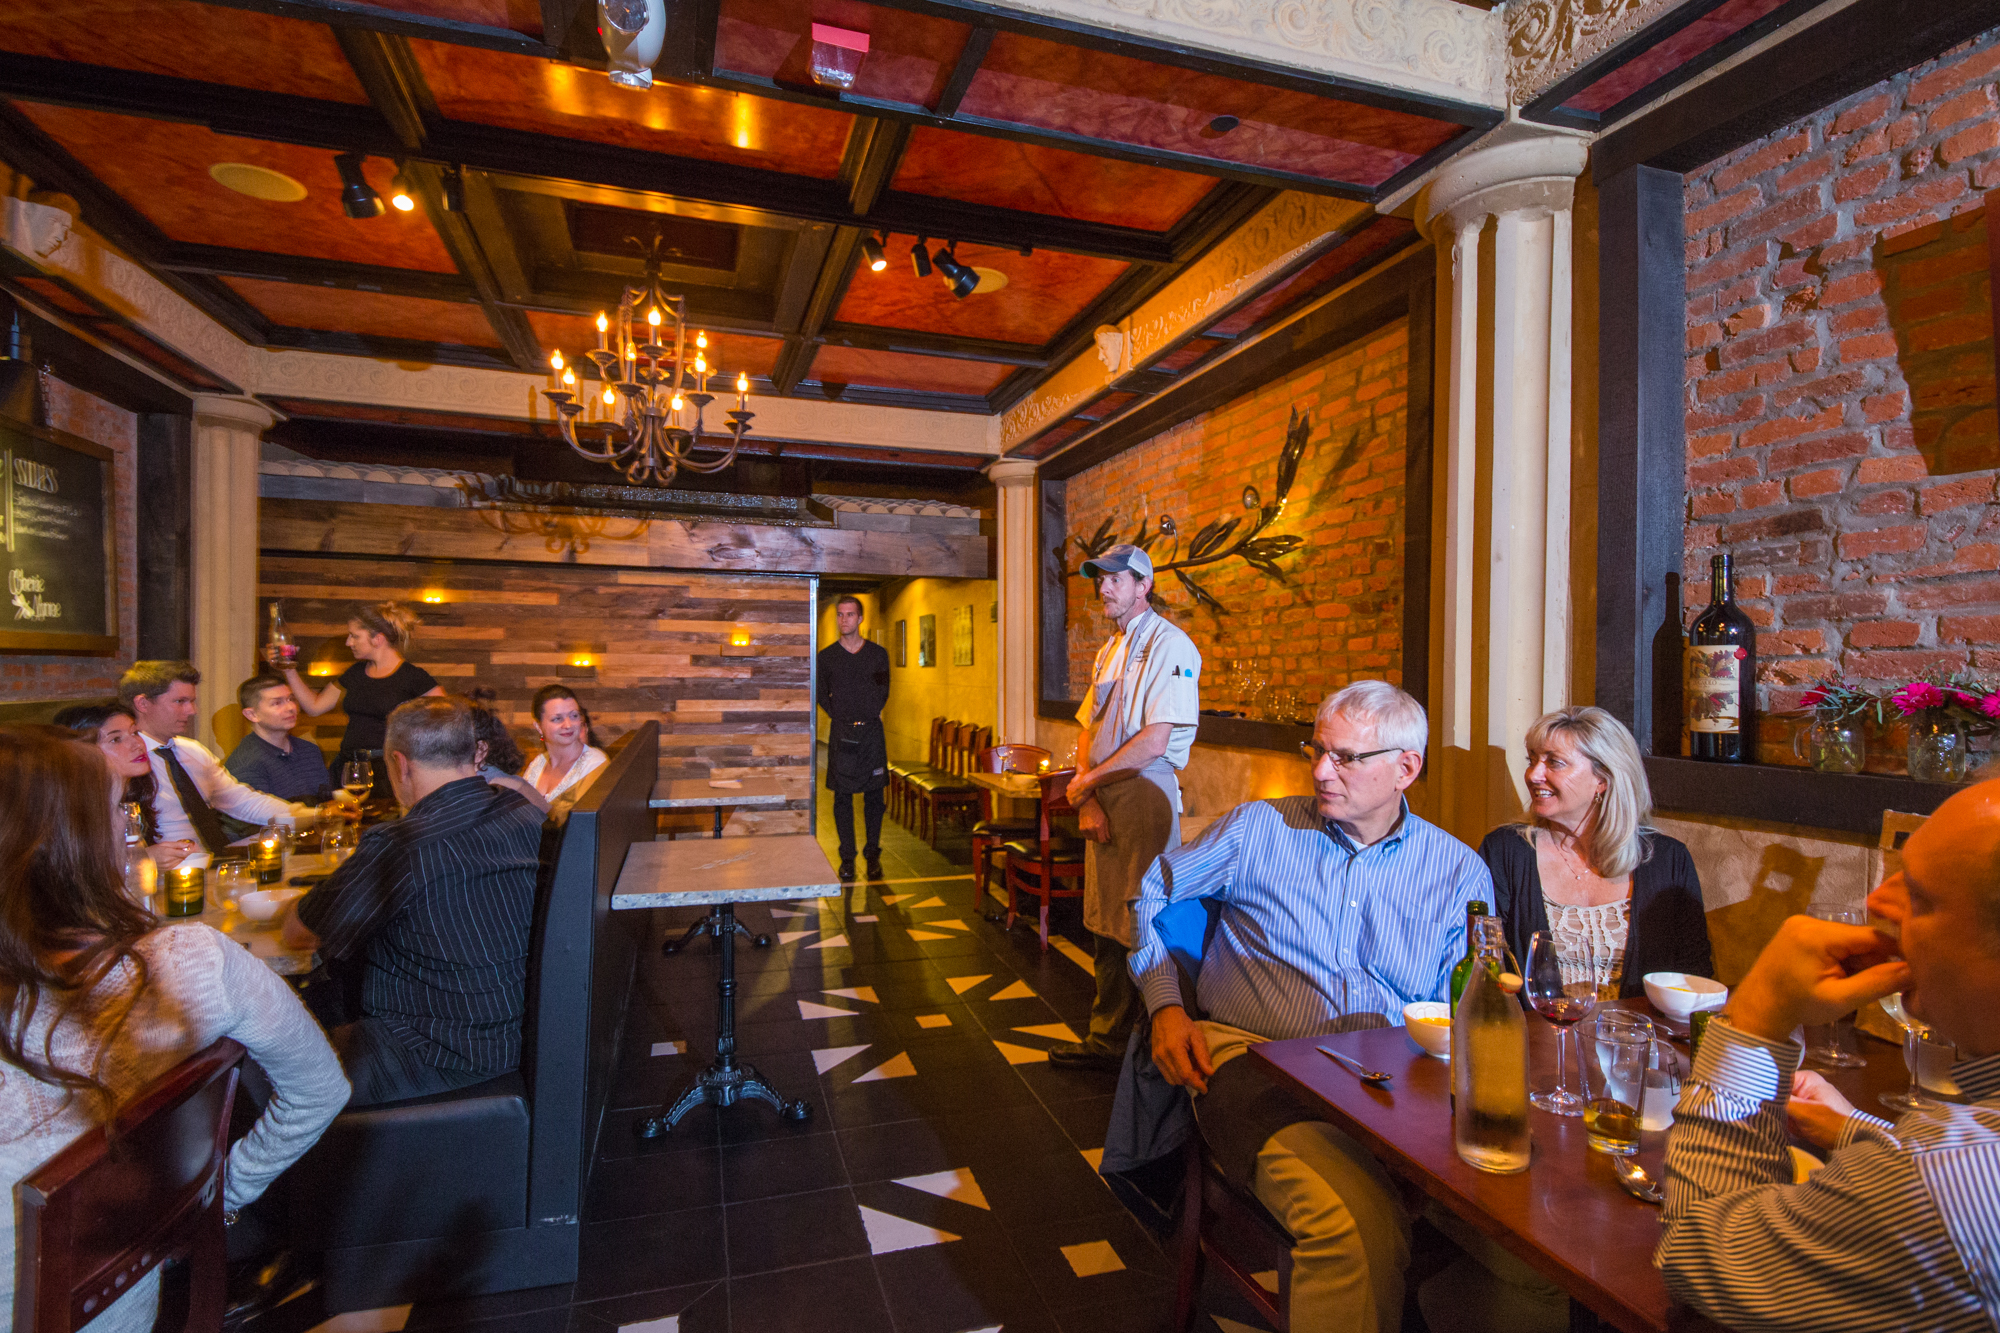 Downstairs Dining Room - This intimate space is sultry and romantic. It is also handicap accessible and has easy access to bathrooms. It is perfect for smaller gatherings and most often used for private chef's tables so the chef can come from the kitchen and explain each dish. Seats 20-36.